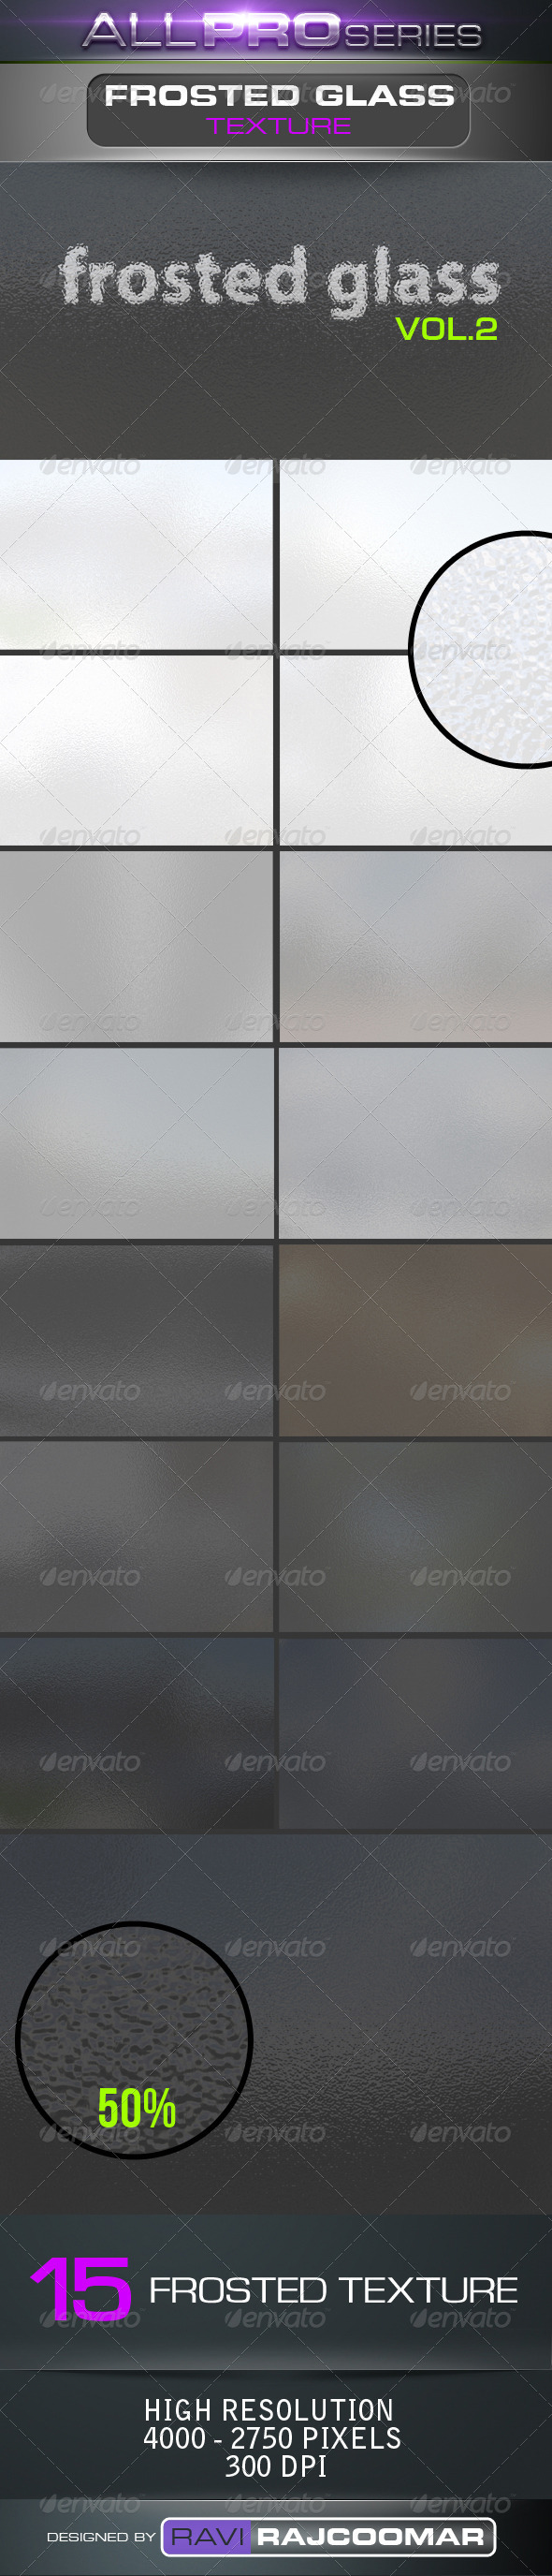 Frosted Glass Backgrounds Vol.2 - Miscellaneous Backgrounds